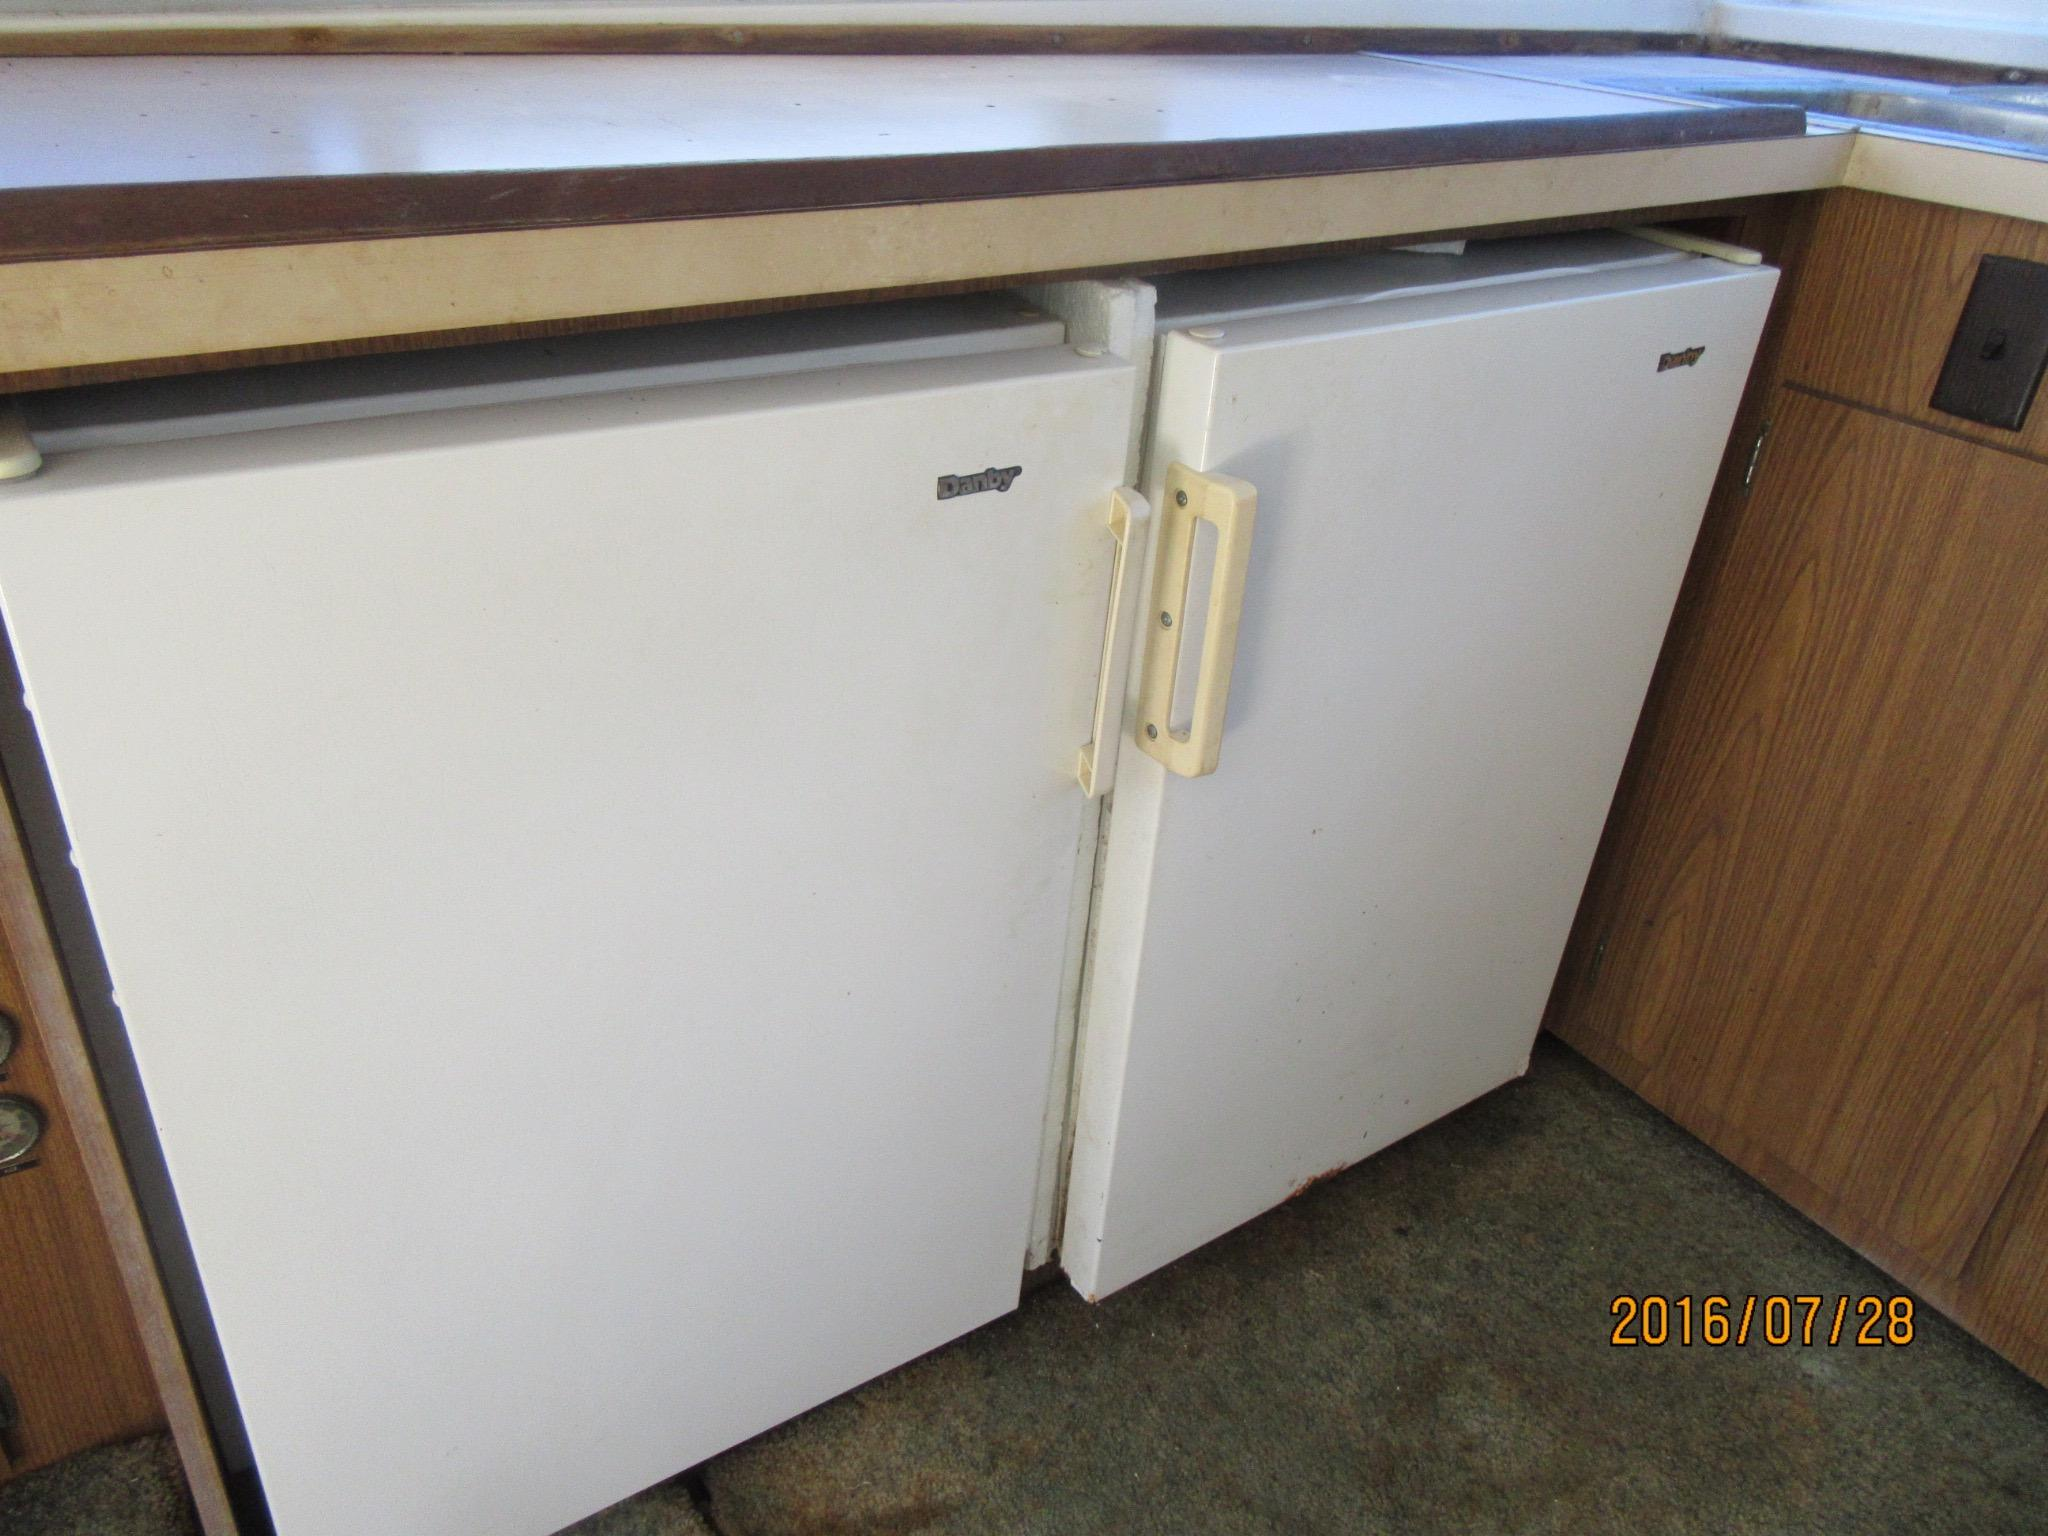 Under The Counter Refrigerator And Freezer